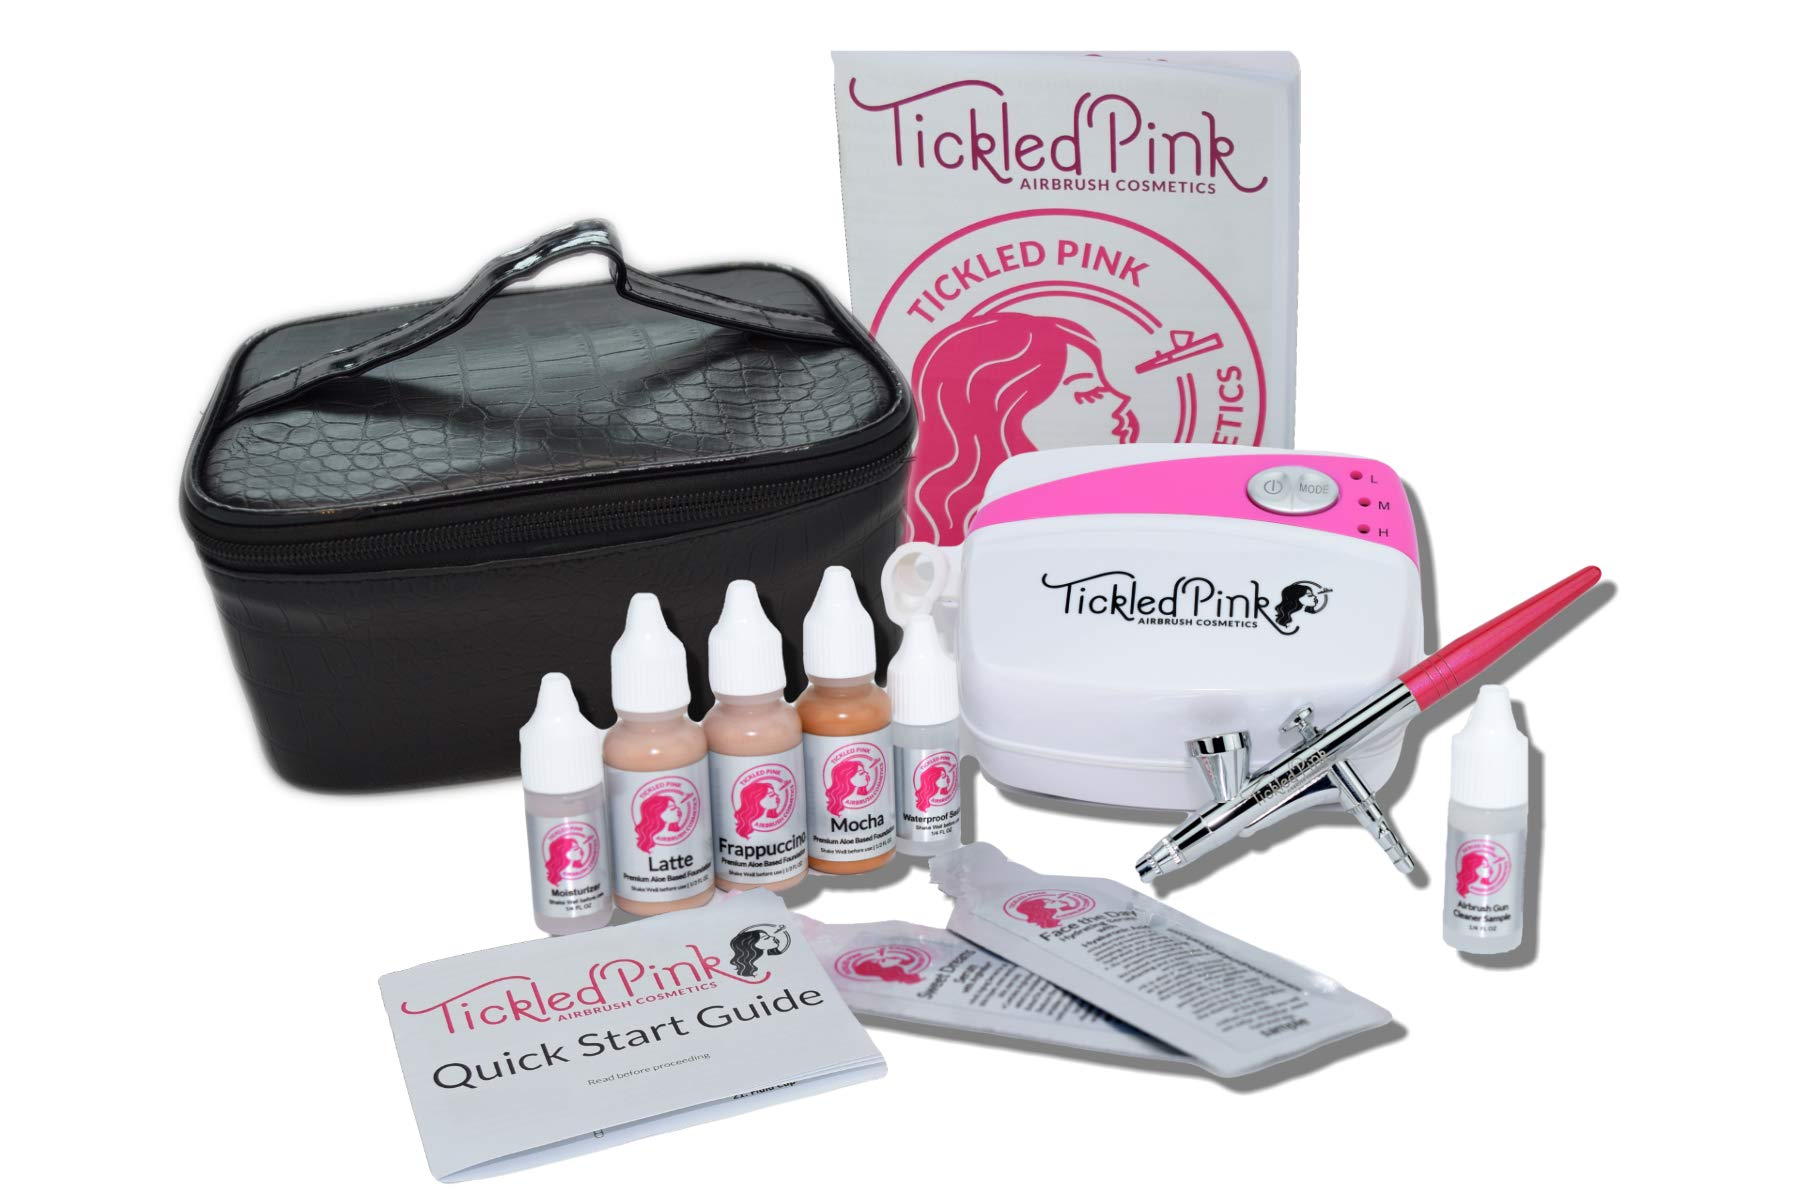 Tickled Pink Cosmetic Airbrush Makeup Kit with 89% Organic Water Based Makeup Infused with Organic Aloe Juice(Fair)